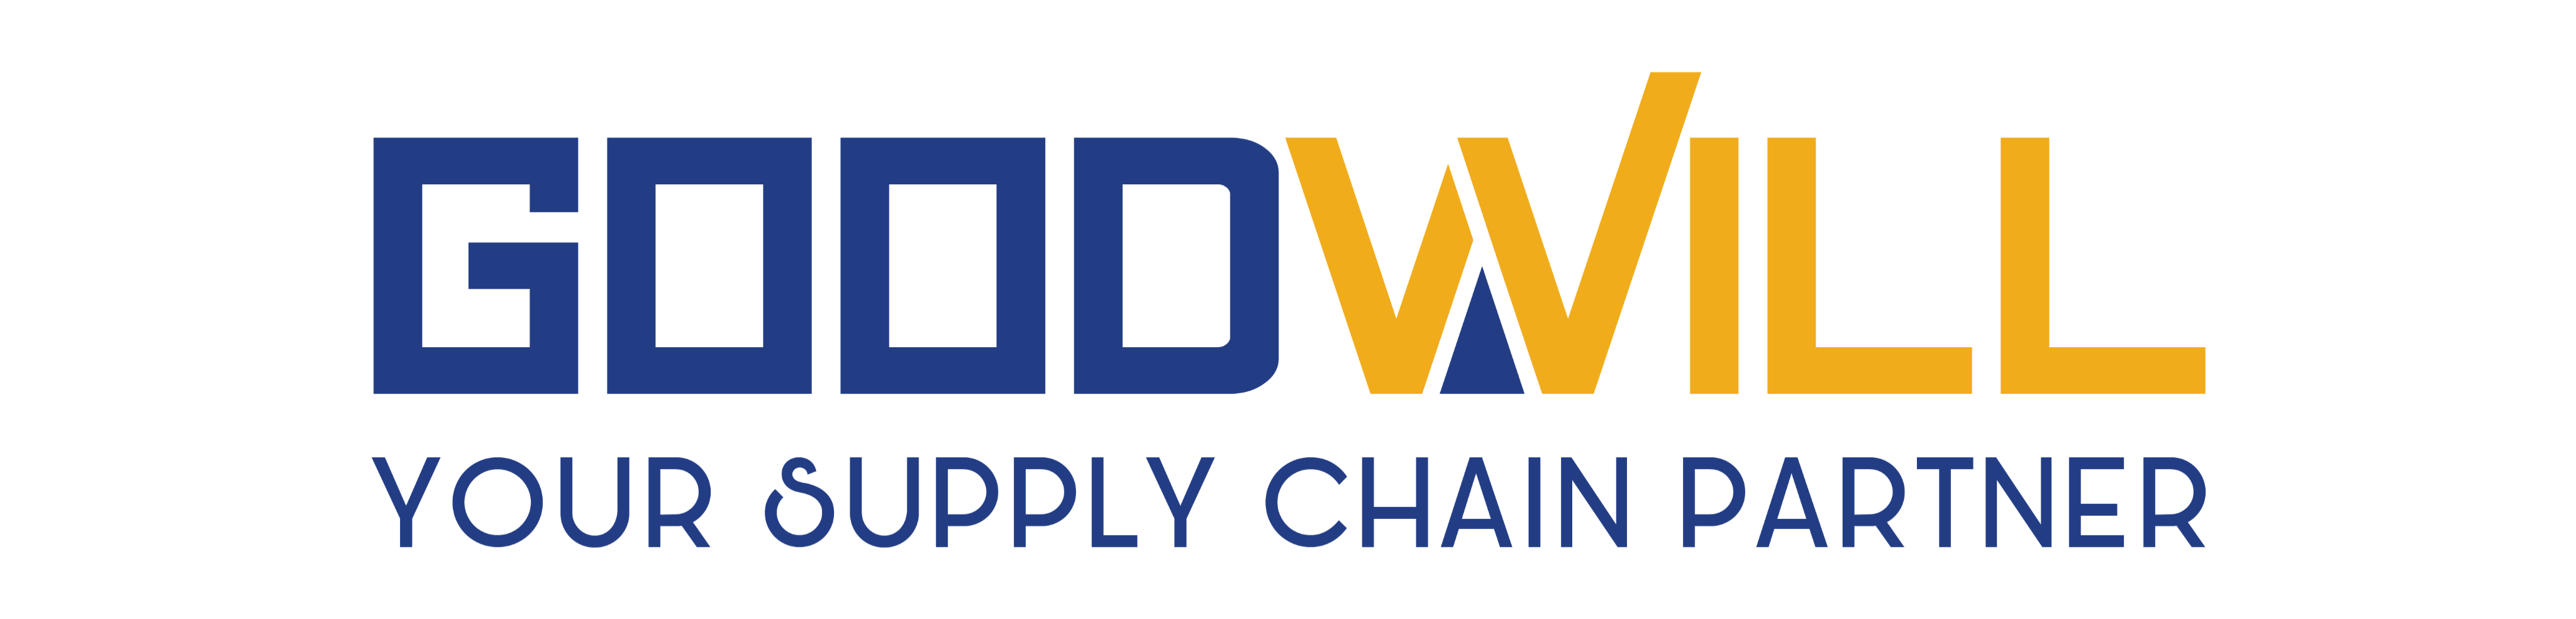 GOODWILL GLOBAL LOGISTICS COMPANY LIMITED